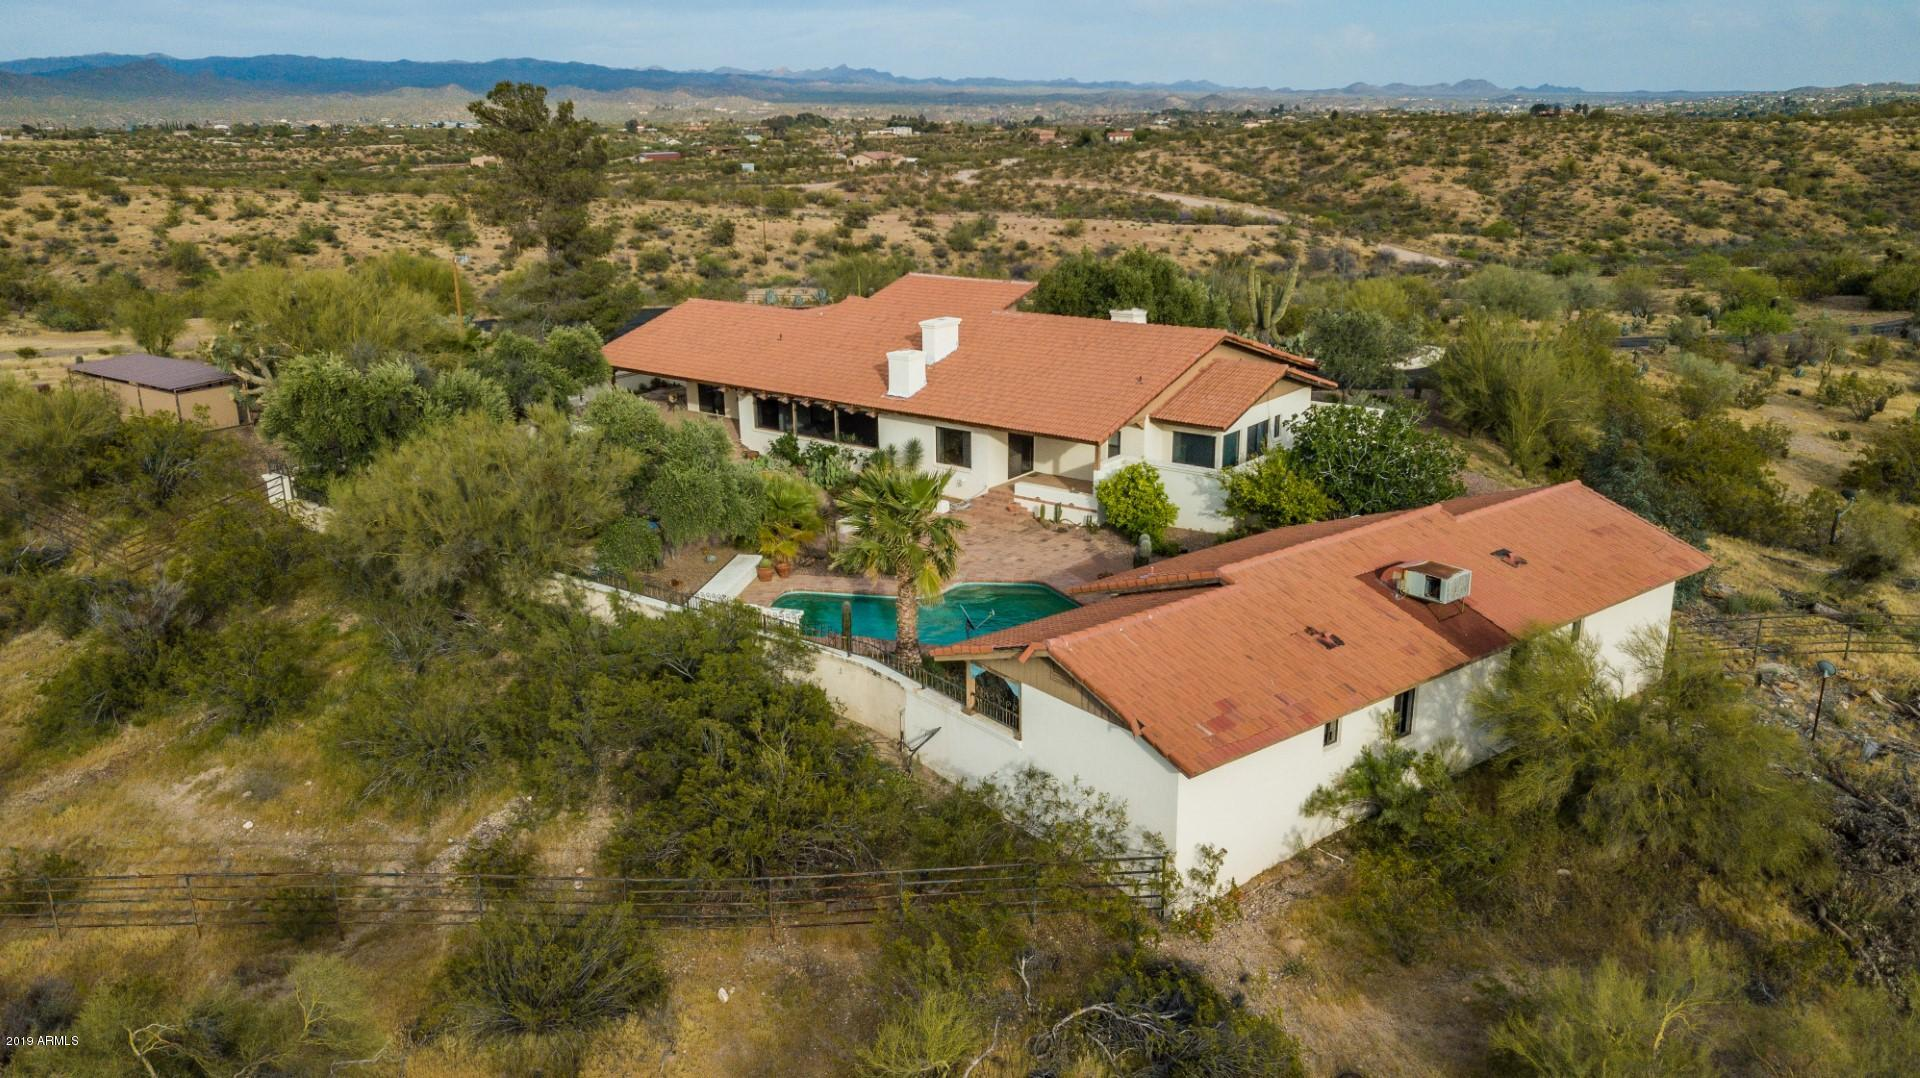 MLS 5912211 19300 W VERDE HILLS Drive, Wickenburg, AZ 85390 Wickenburg AZ Mountain View